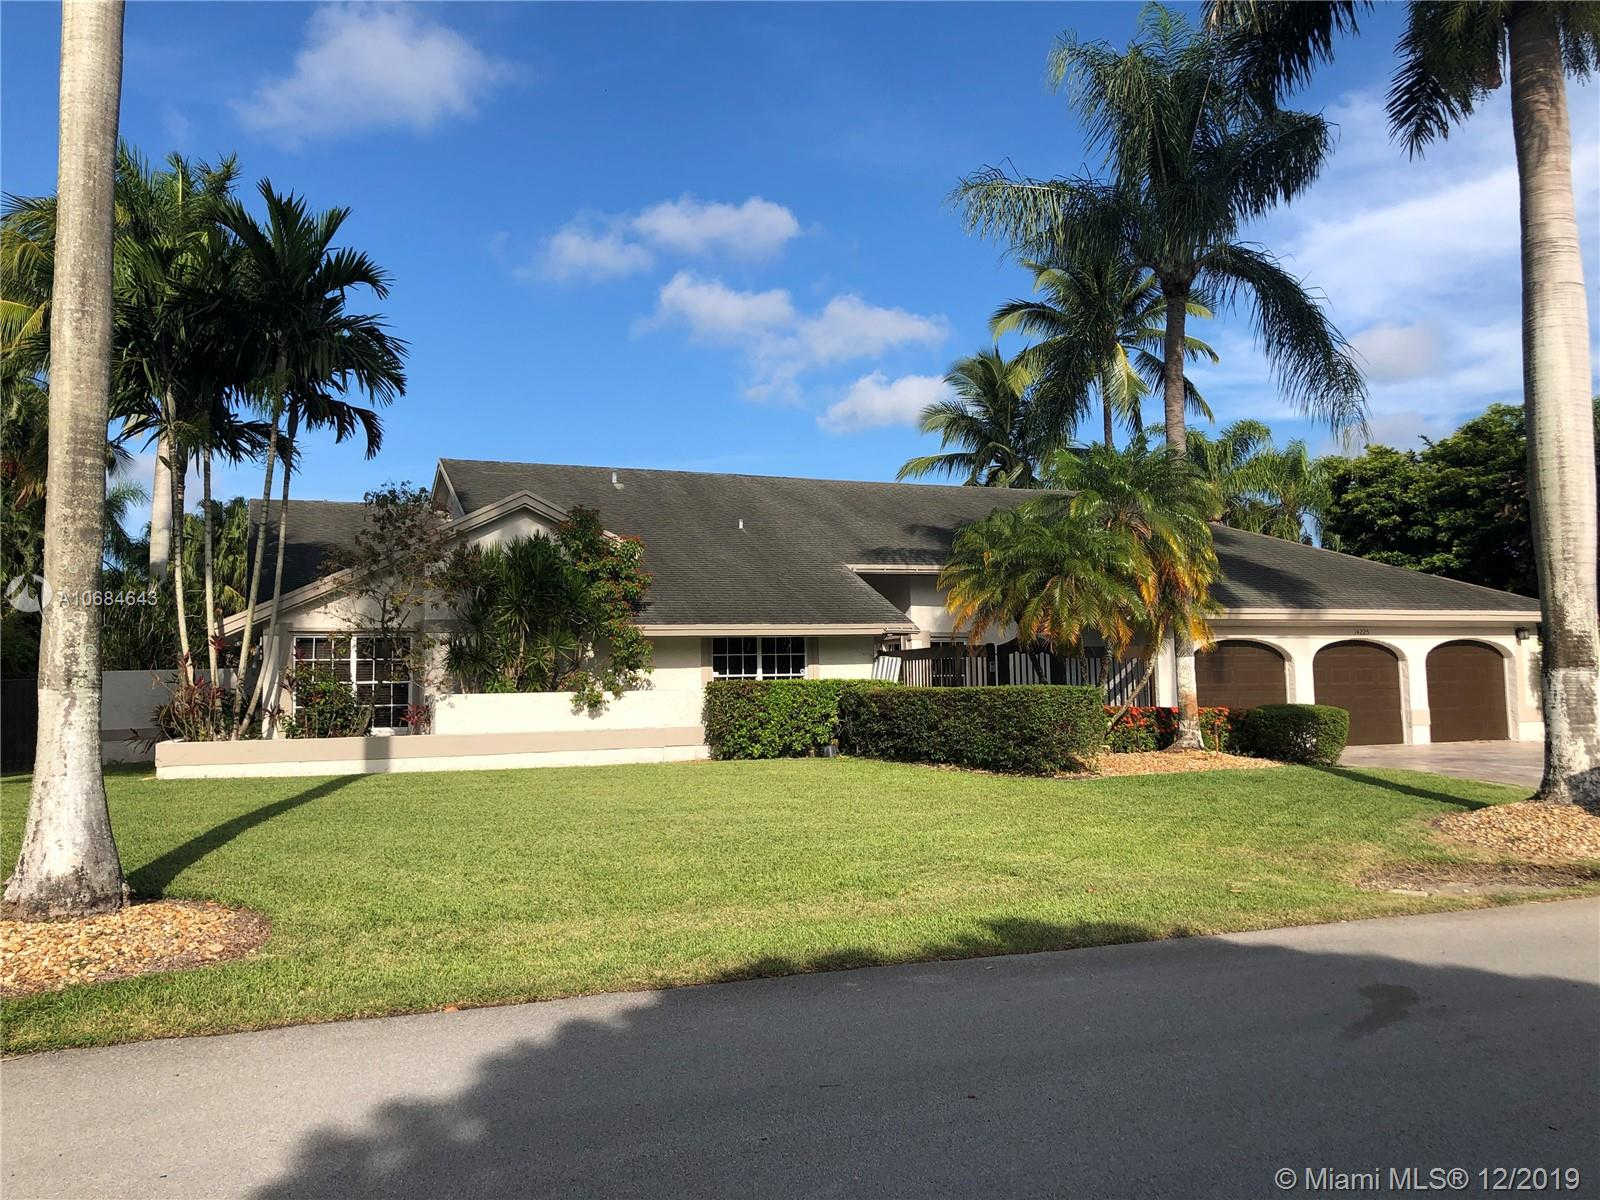 14225 SW 103rd Ave, Miami, FL 33176 is now new to the market!